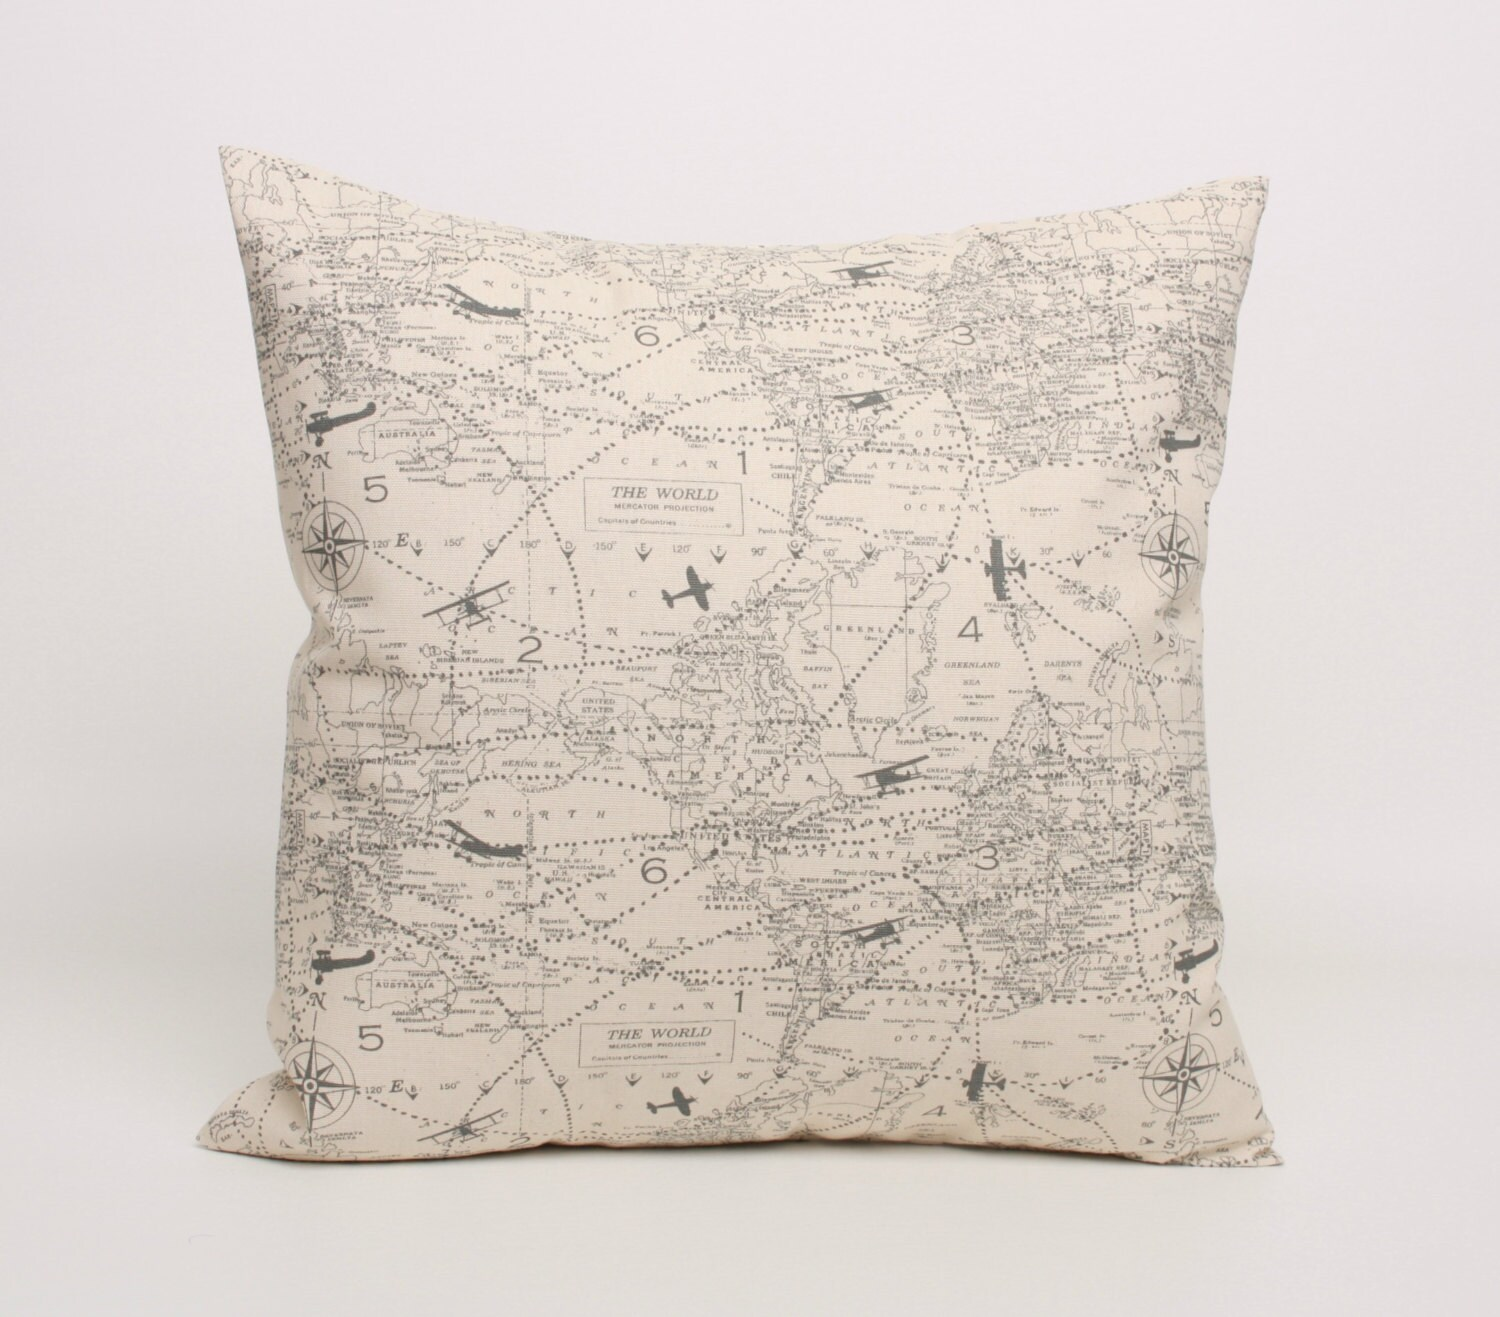 Throw Pillows Cream : Air Plane Map Throw Pillow Cover Gray and Cream designed for